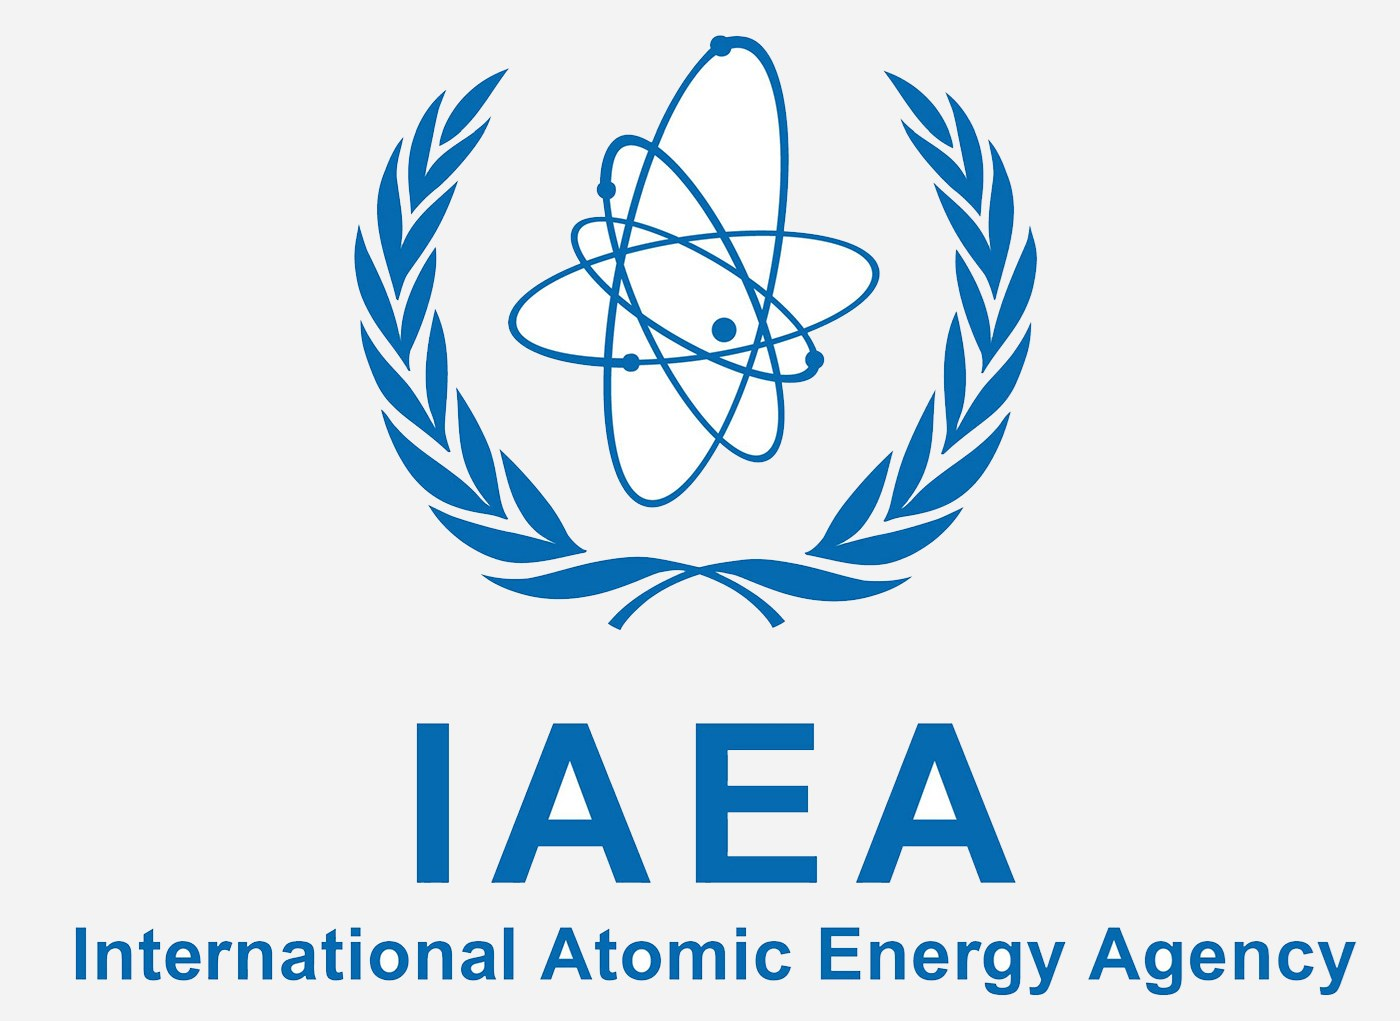 The International Atomic Energy Agency is an international organization that seeks to promote the peaceful use of nuclear energy, and to inhibit its use for any military purpose, including nuclear weapons. The IAEA is the world's centre for cooperation in the nuclear field, promoting the safe, secure and peaceful use of nuclear technology. It works in a wide range of areas including energy generation, health, food and agriculture and environmental protection.